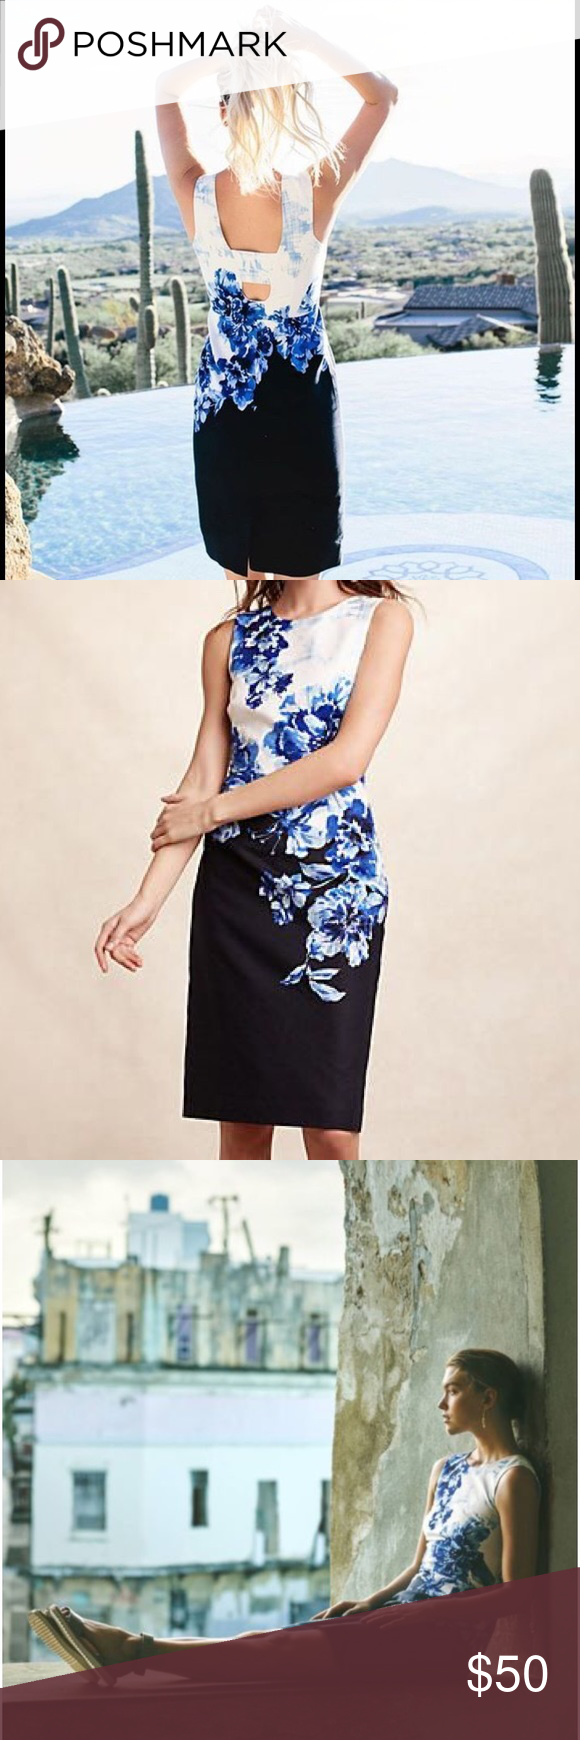 Maeve vanda blue pencil dress in excellent condition. This anthropologie floral dress would be perfect for Easter, graduation, or wedding season Anthropologie Dresses Mini